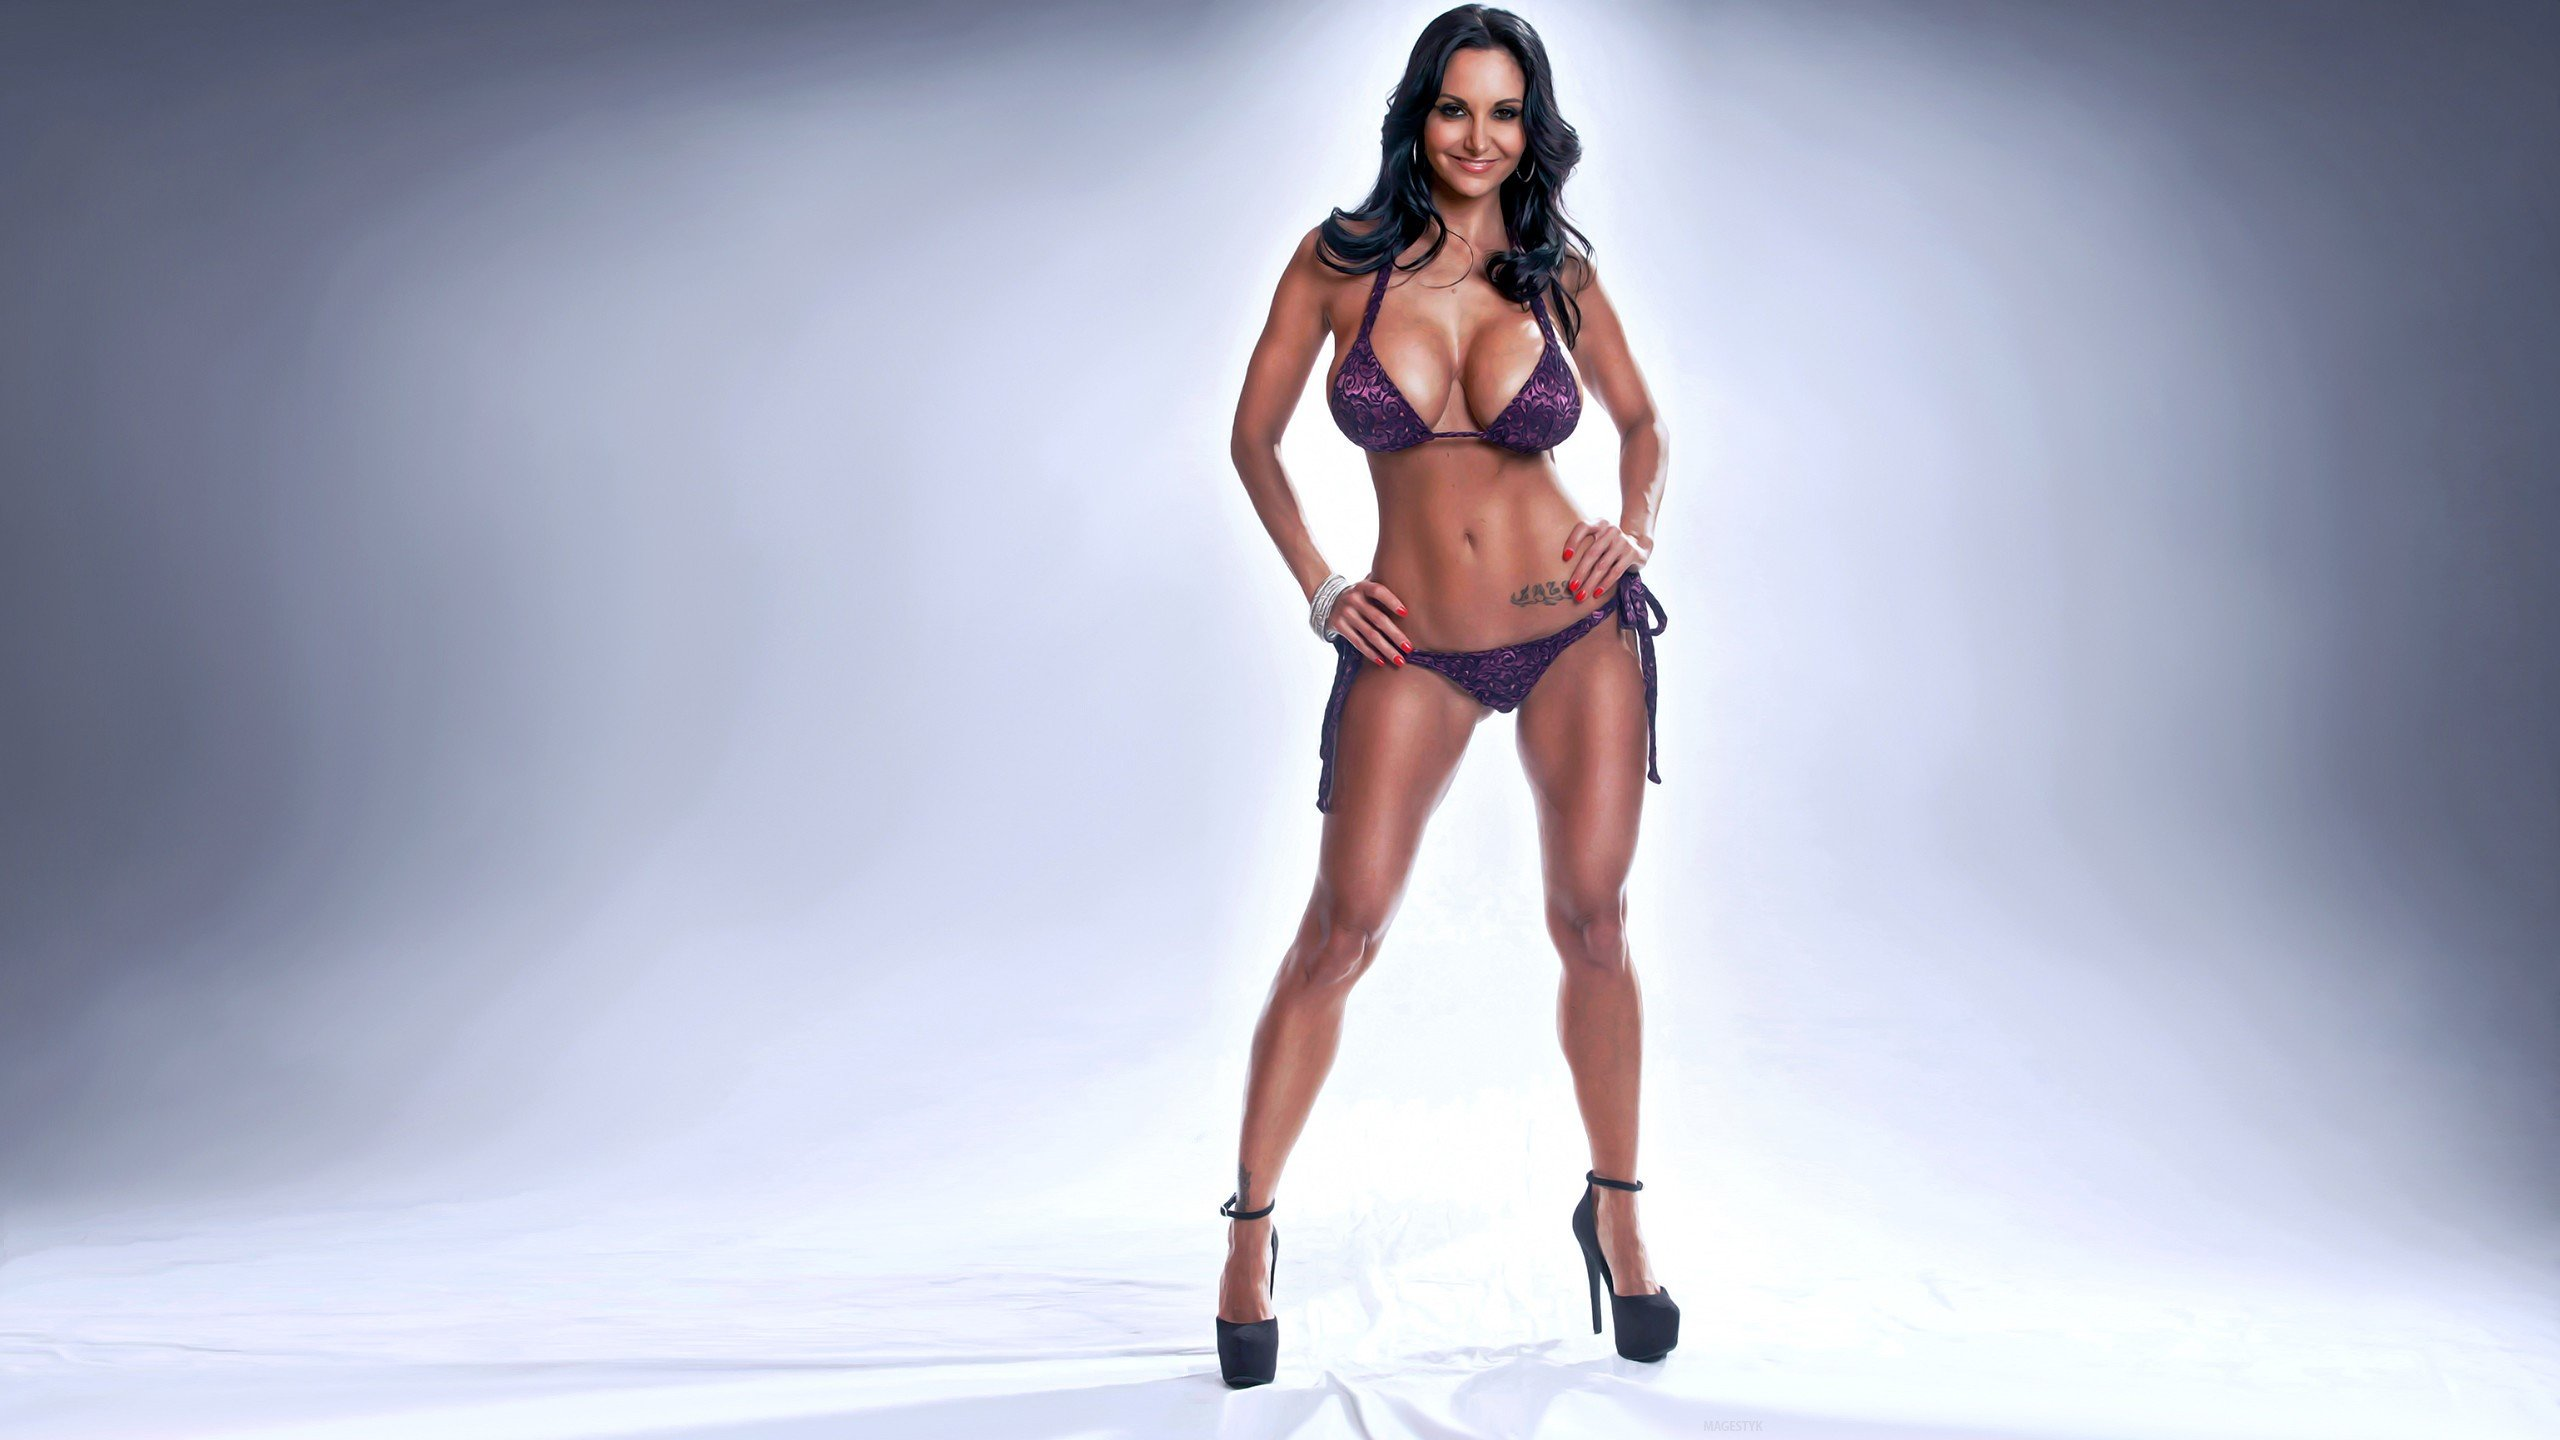 Ava Addams HQ Wallpapers